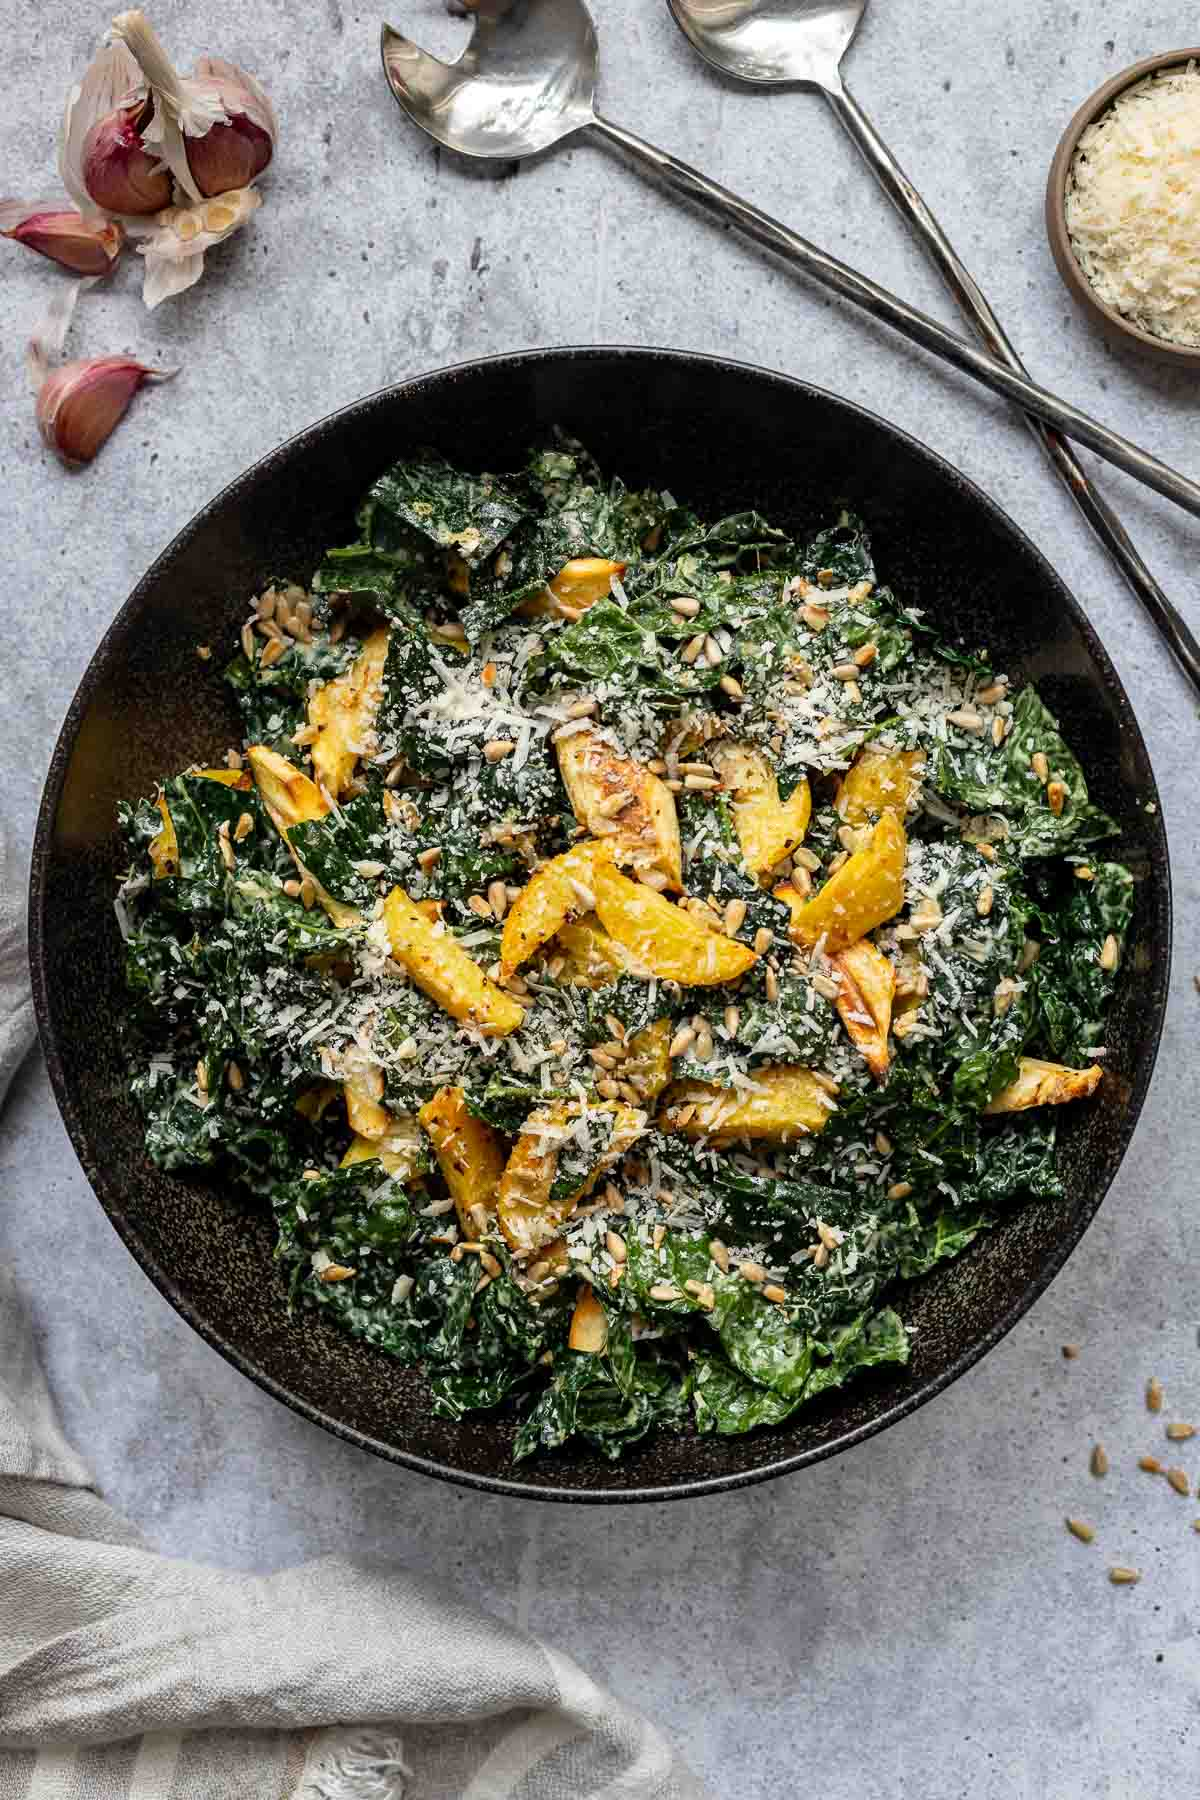 Fall Salad with Tuscan Kale and Parmesan-Roasted Potatoes